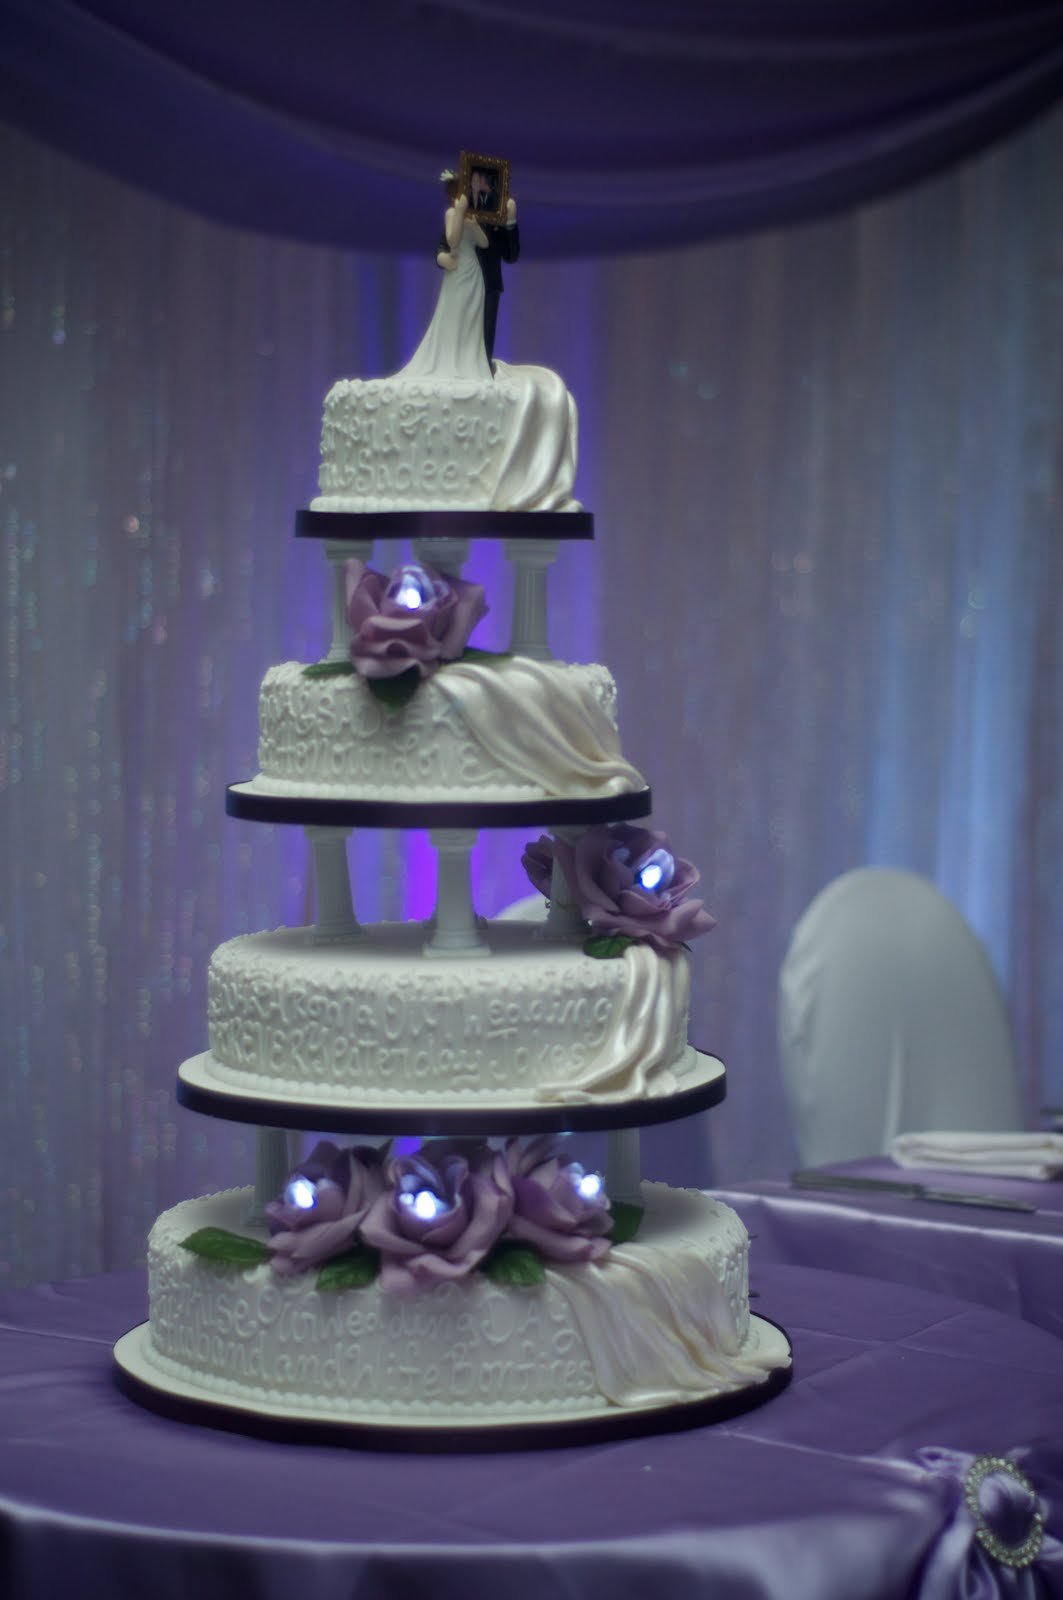 Beach wedding cakes, Wedding cakes and Trinidad on Pinterest